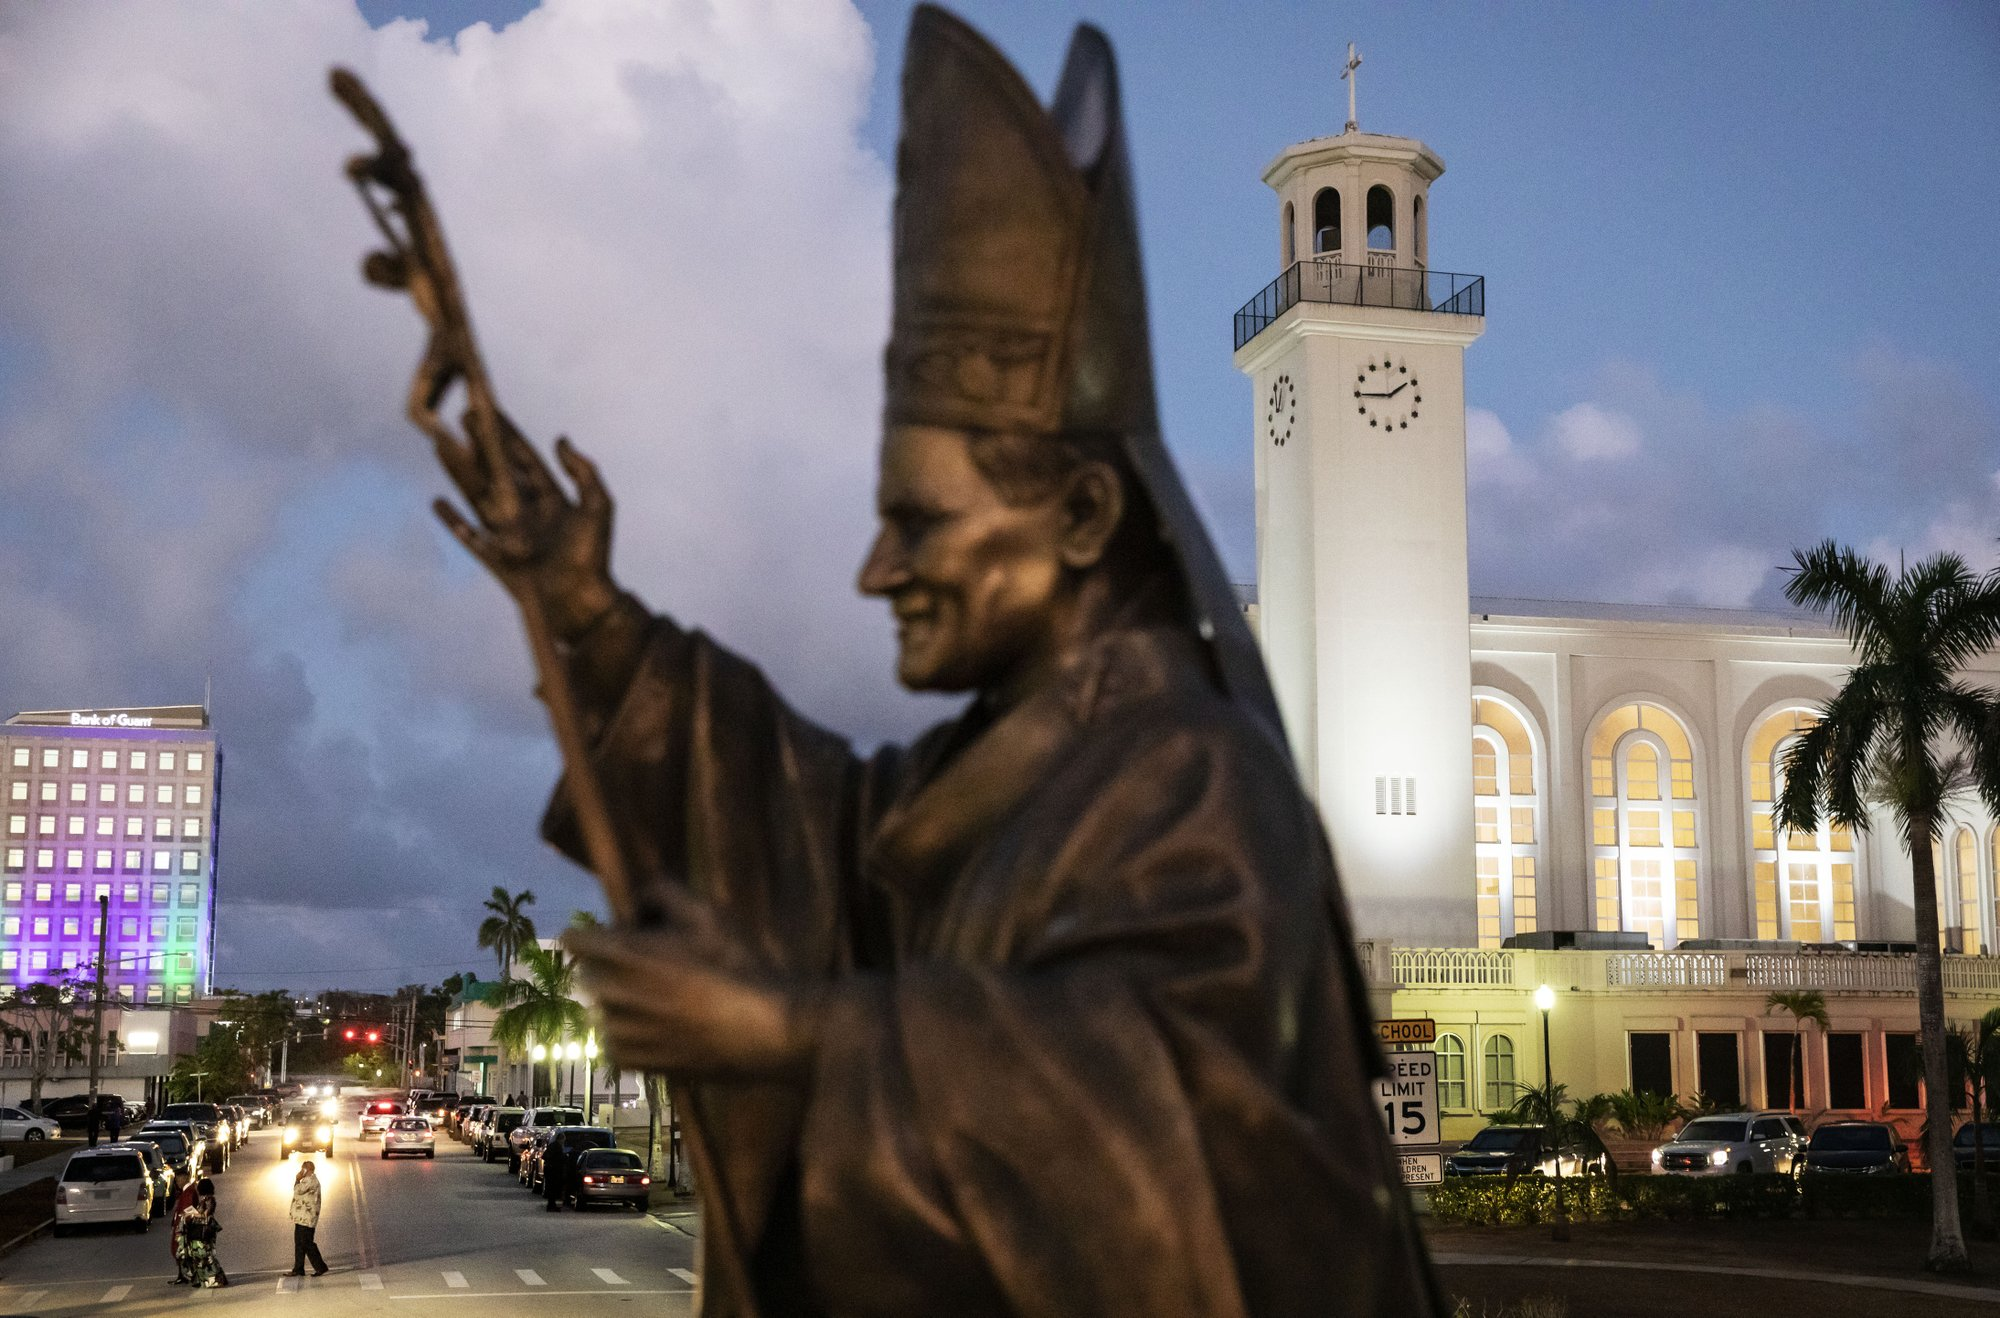 Catholicism ingrained in daily life on US island of Guam